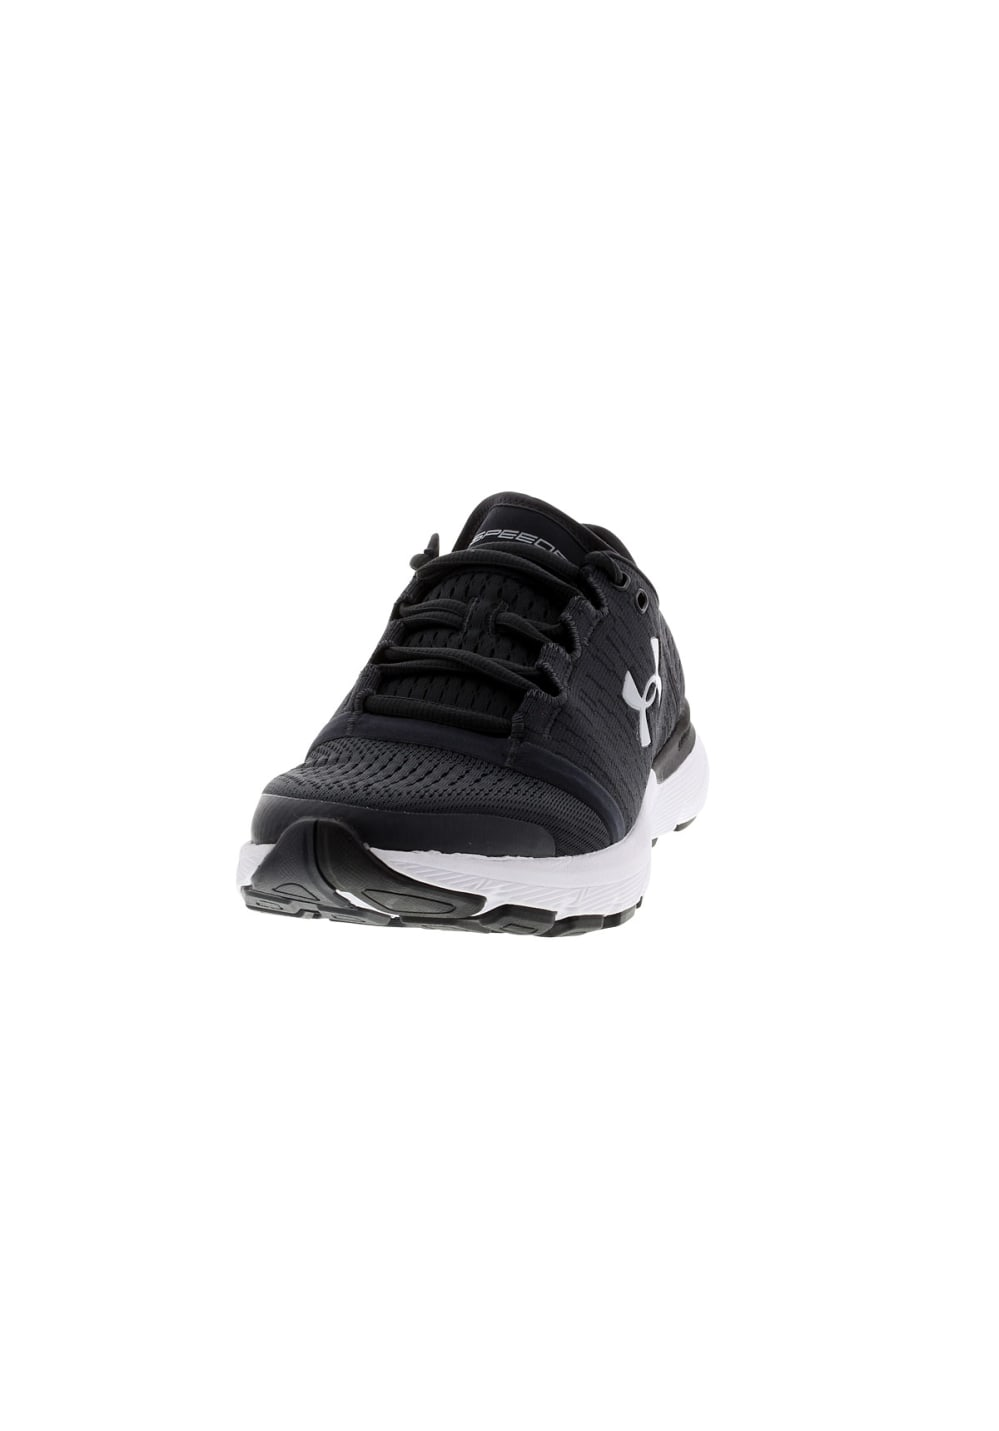 96e514835 Next. -60%. Under Armour. Speedform Gemini 3 Graphic - Running shoes for  Women